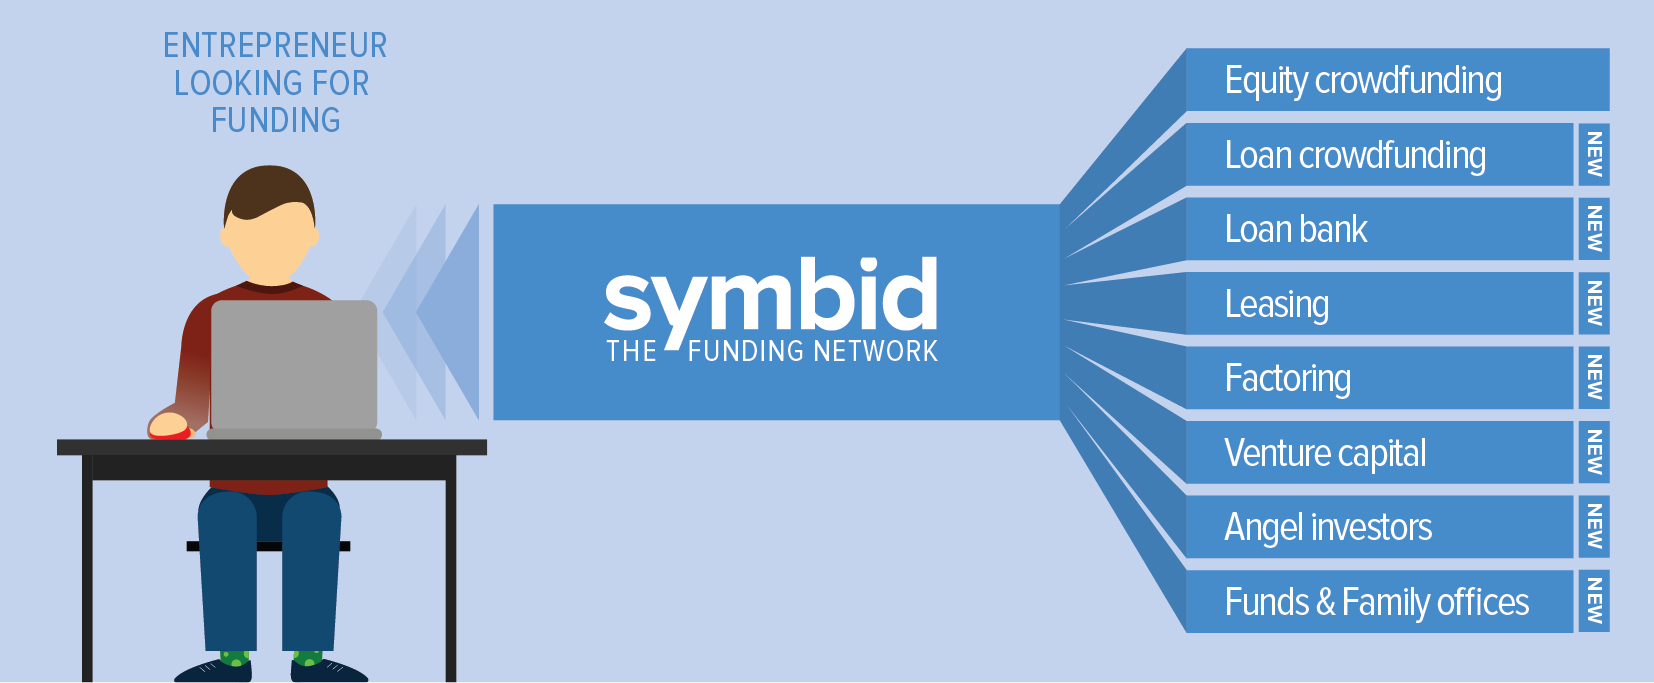 Symbid - The Funding Network - Transition high